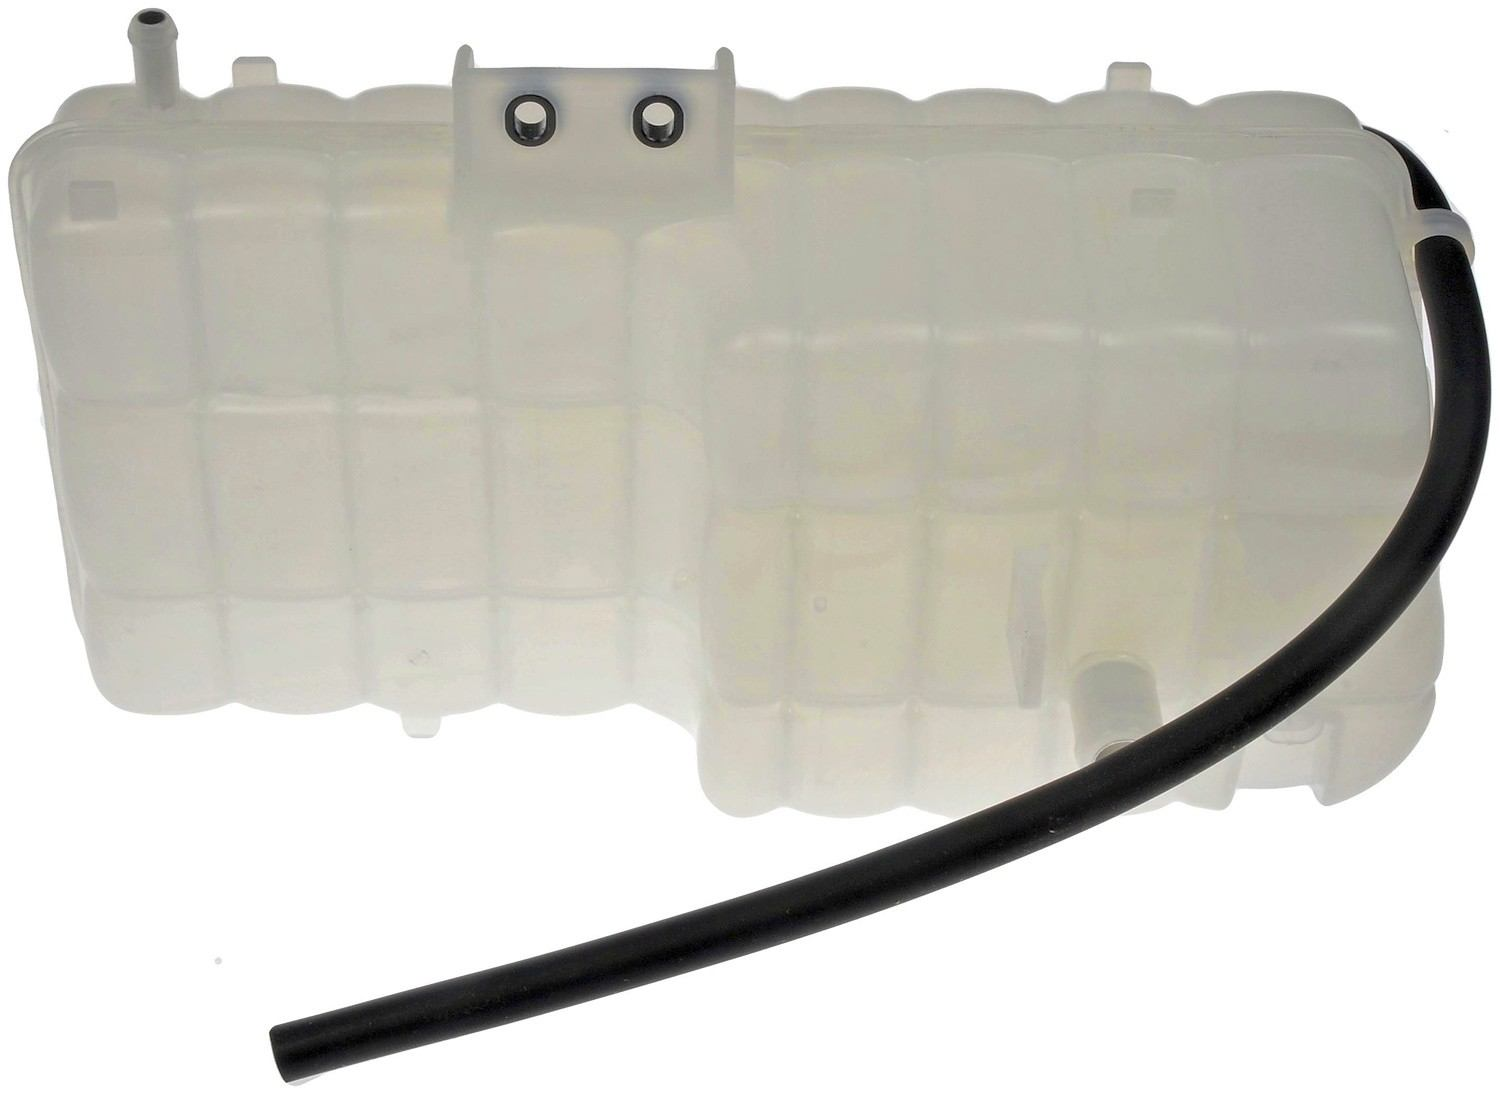 DORMAN - HD SOLUTIONS - Engine Coolant Recovery Tank (Front) - DHD 603-5601